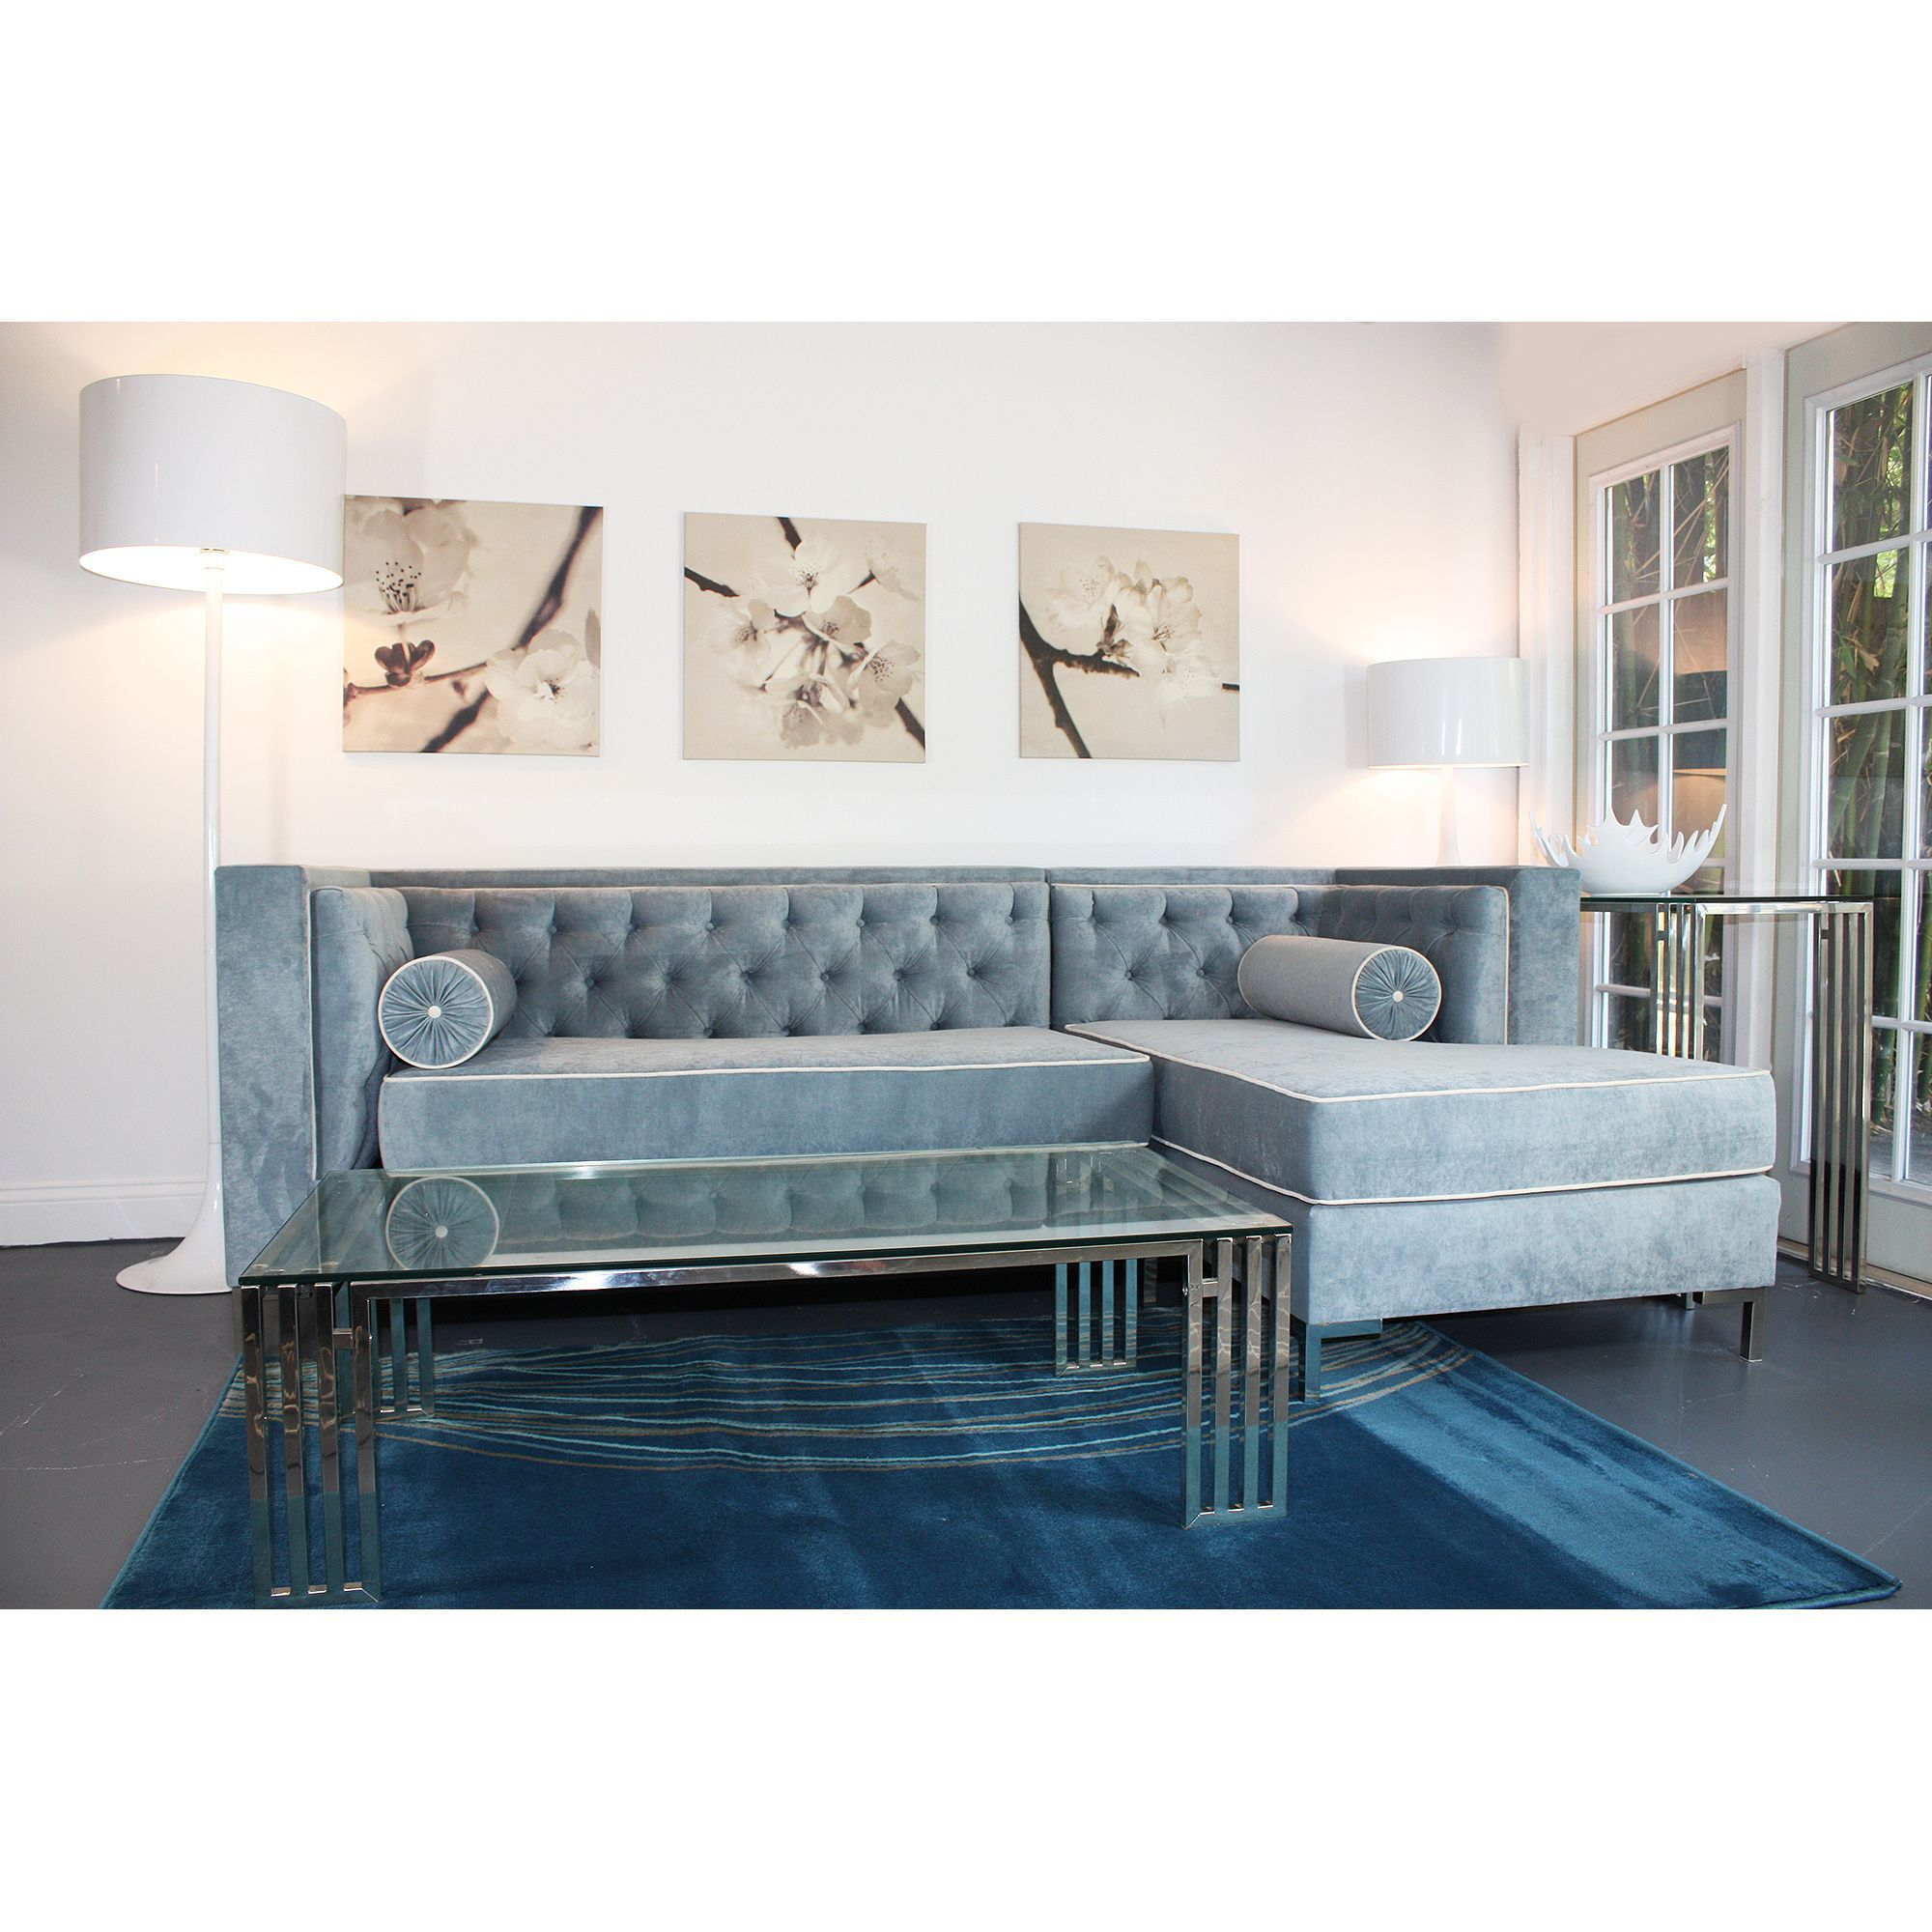 The Tobias lush hand tufted sectional sofa features Wedgewood blue